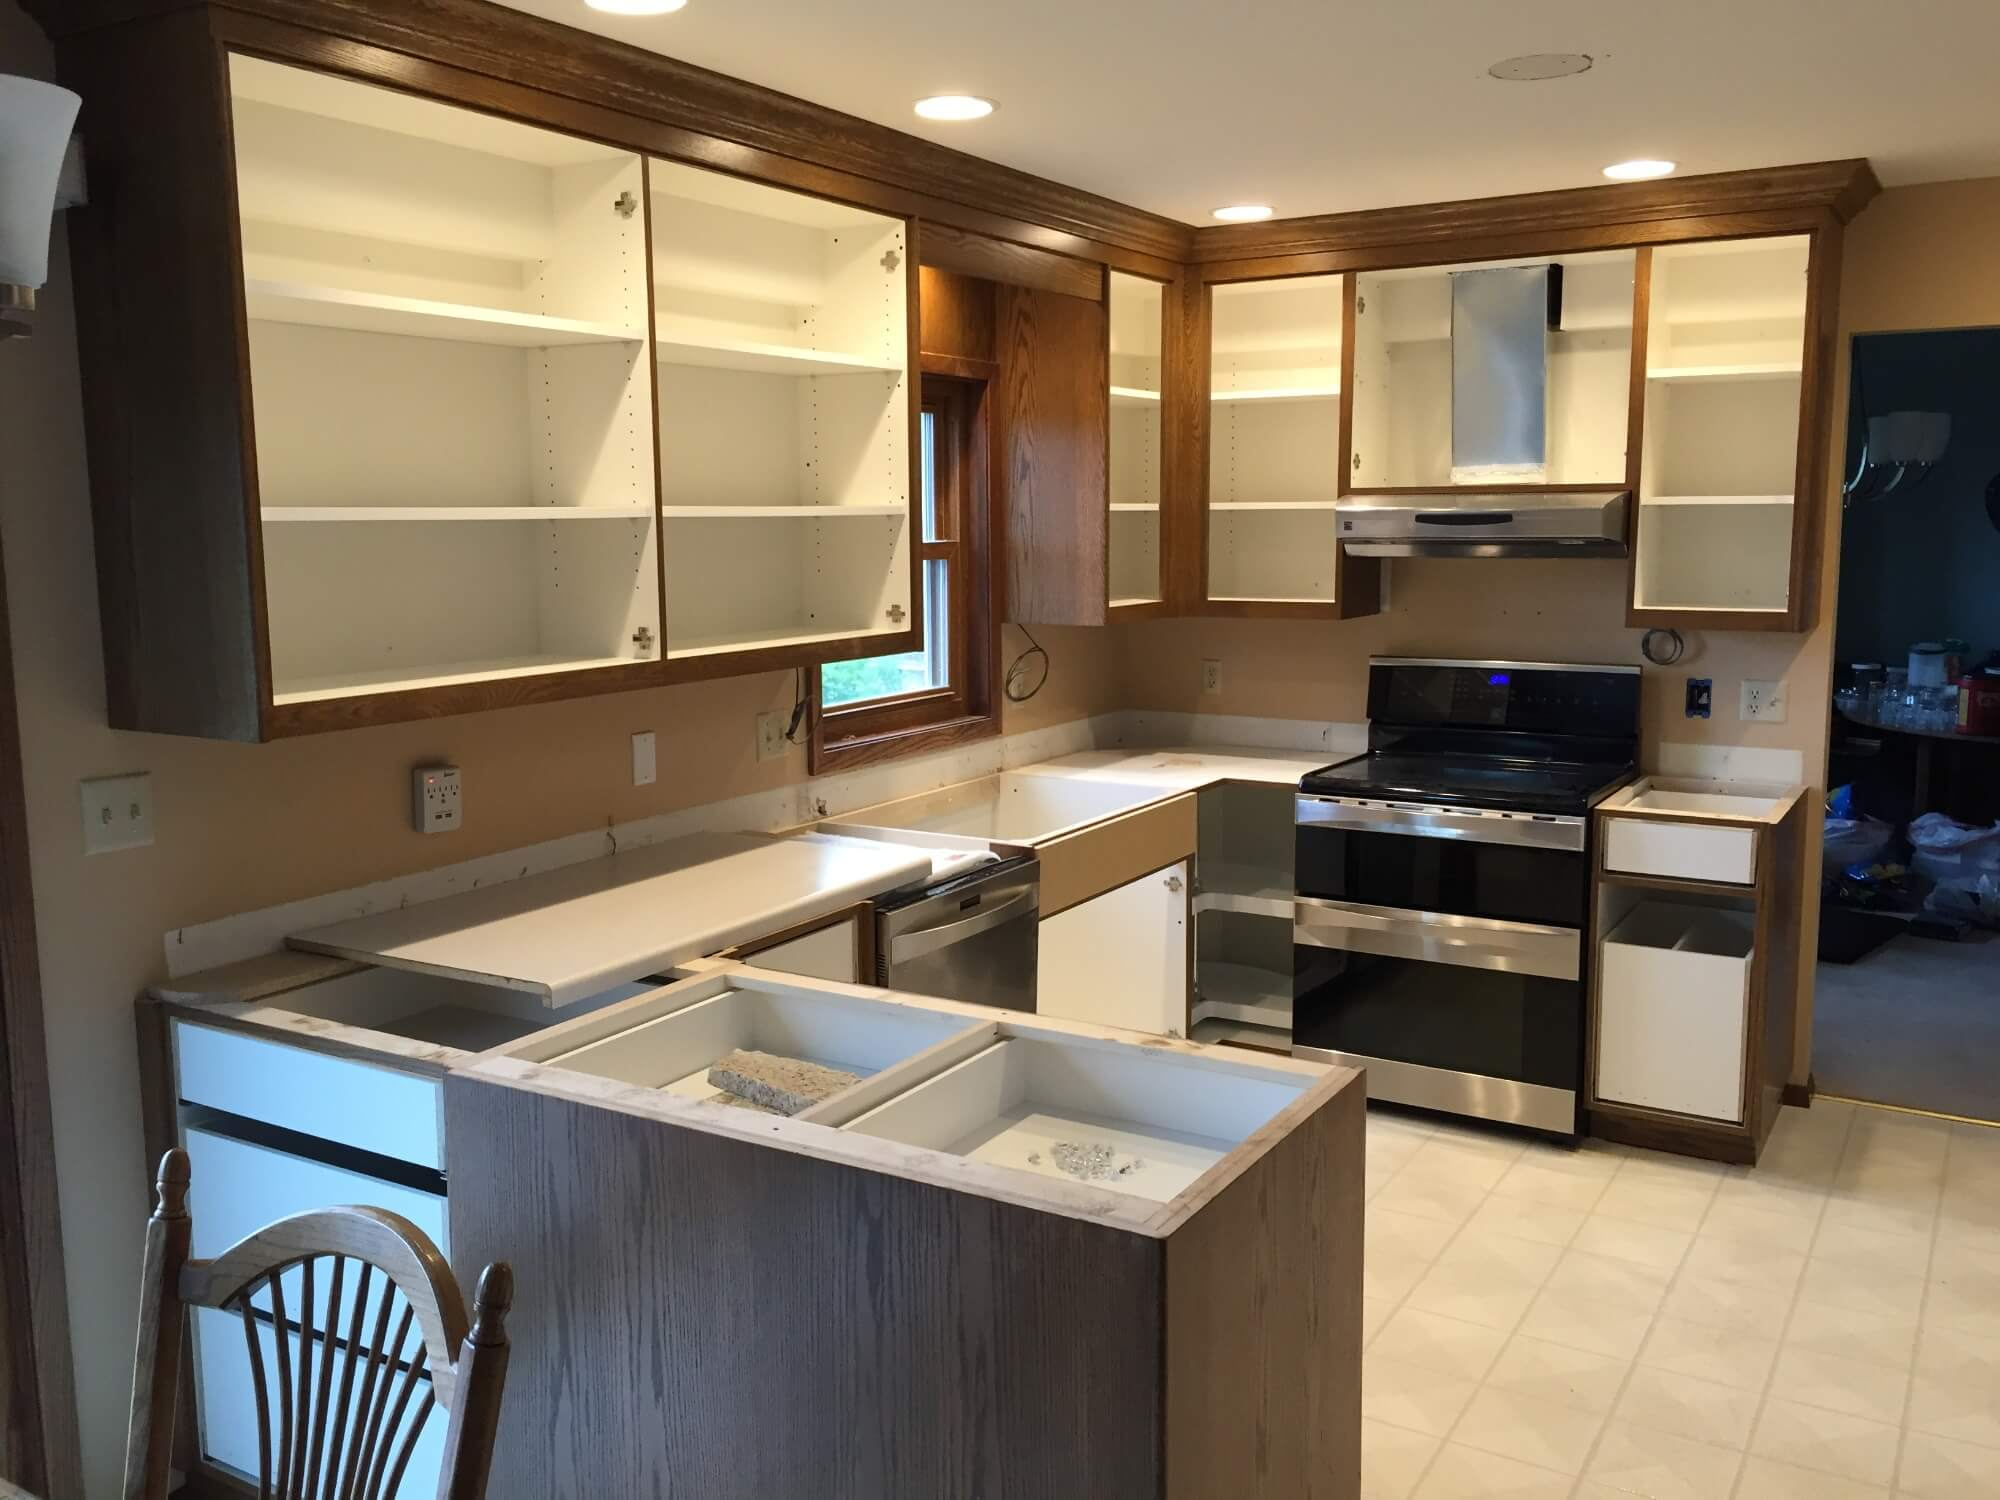 Kitchen with Panel Cabinets Installed